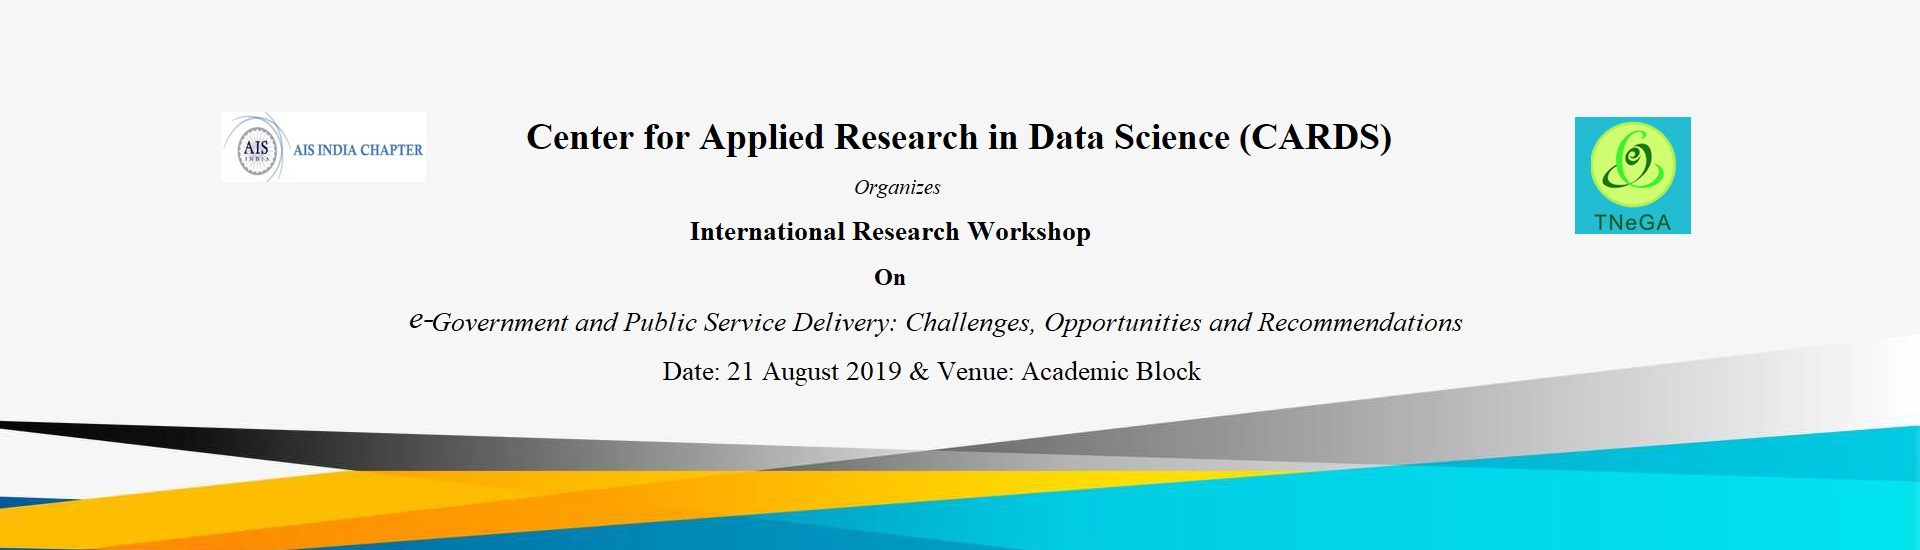 International Research Workshop